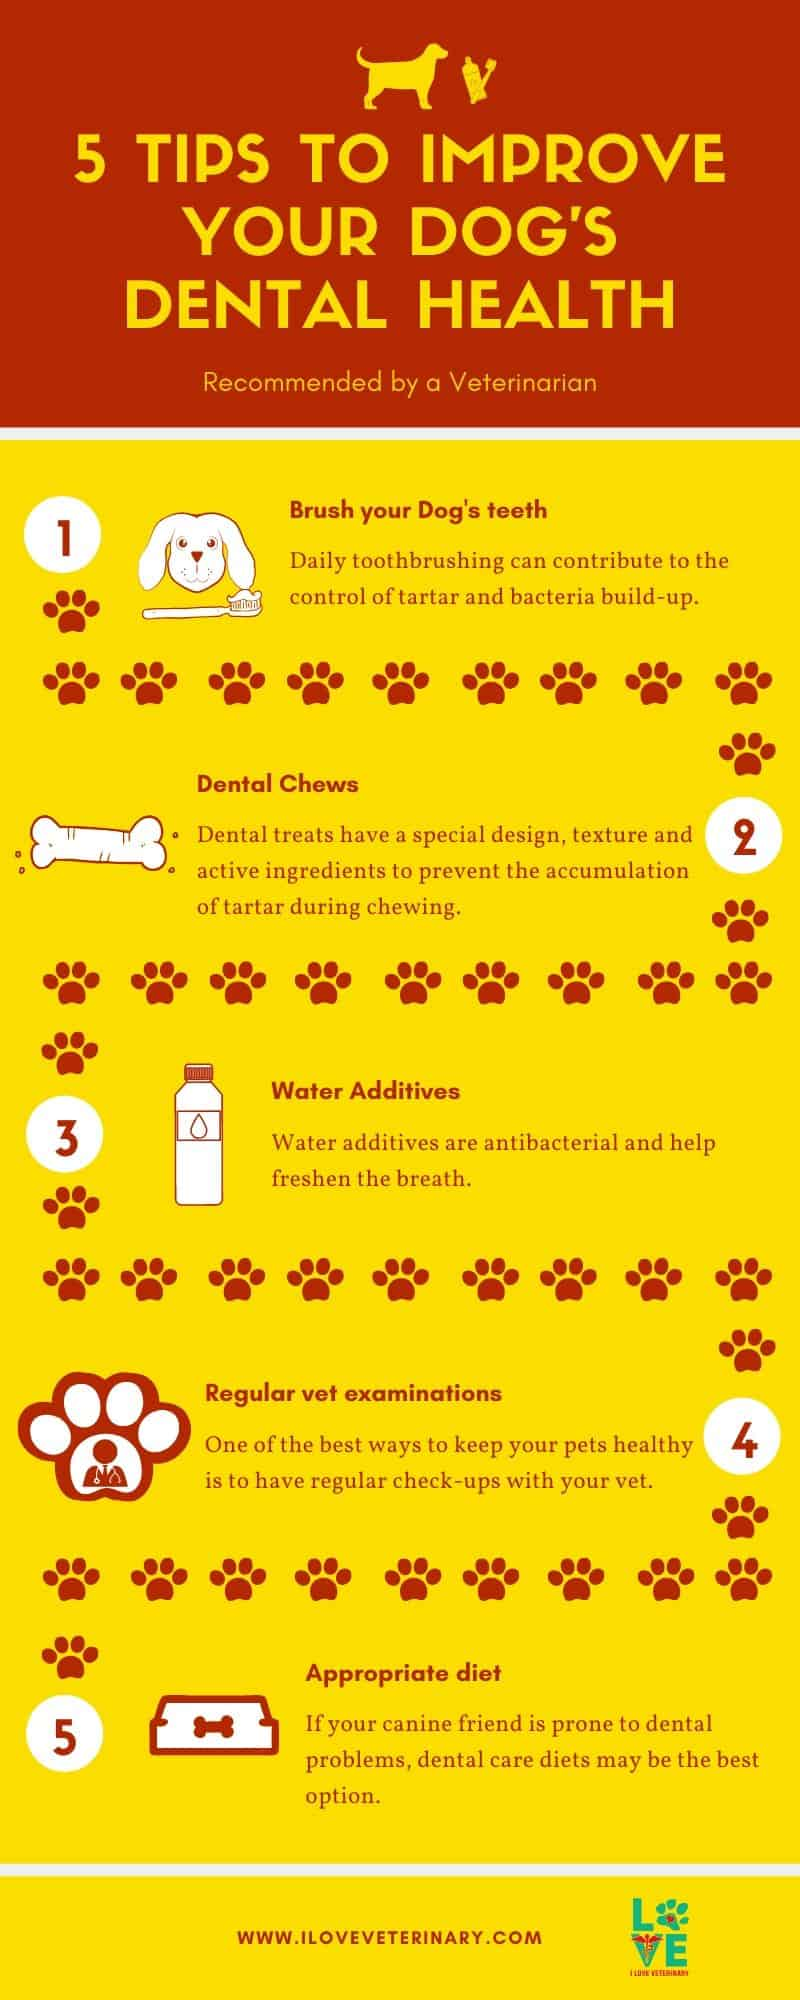 5 Tips to improve your dog's dental health I Love Veterinary